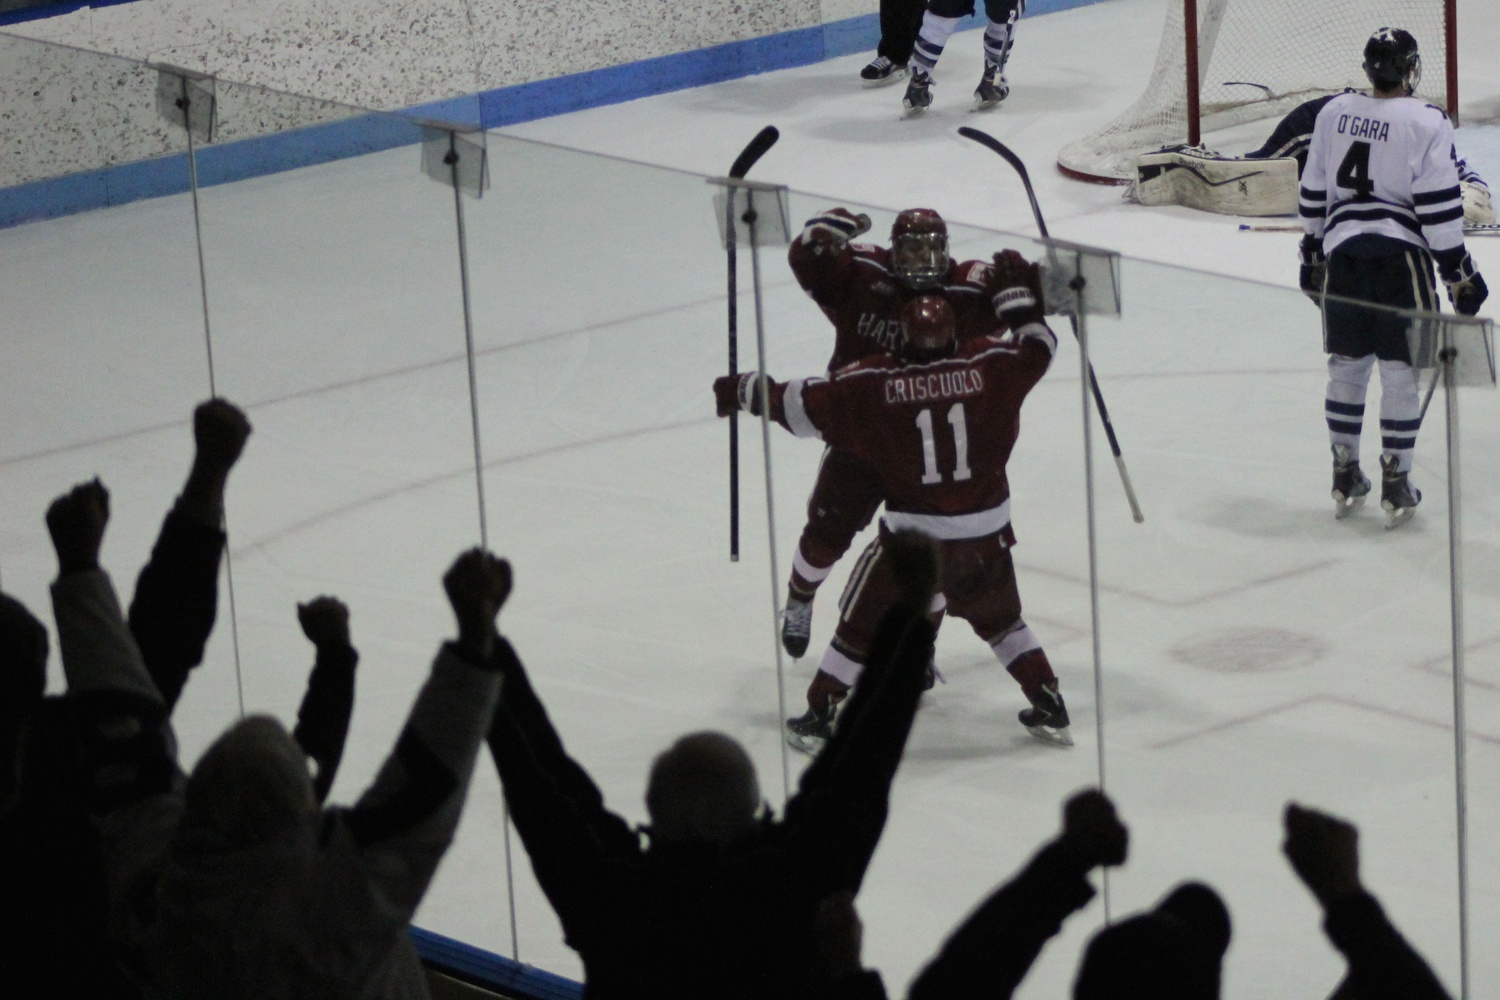 Vesey celebrates with junior co-captain Kyle Criscuolo. Harvard will play in the ECAC tournament's final weekend for the first time since 2012.